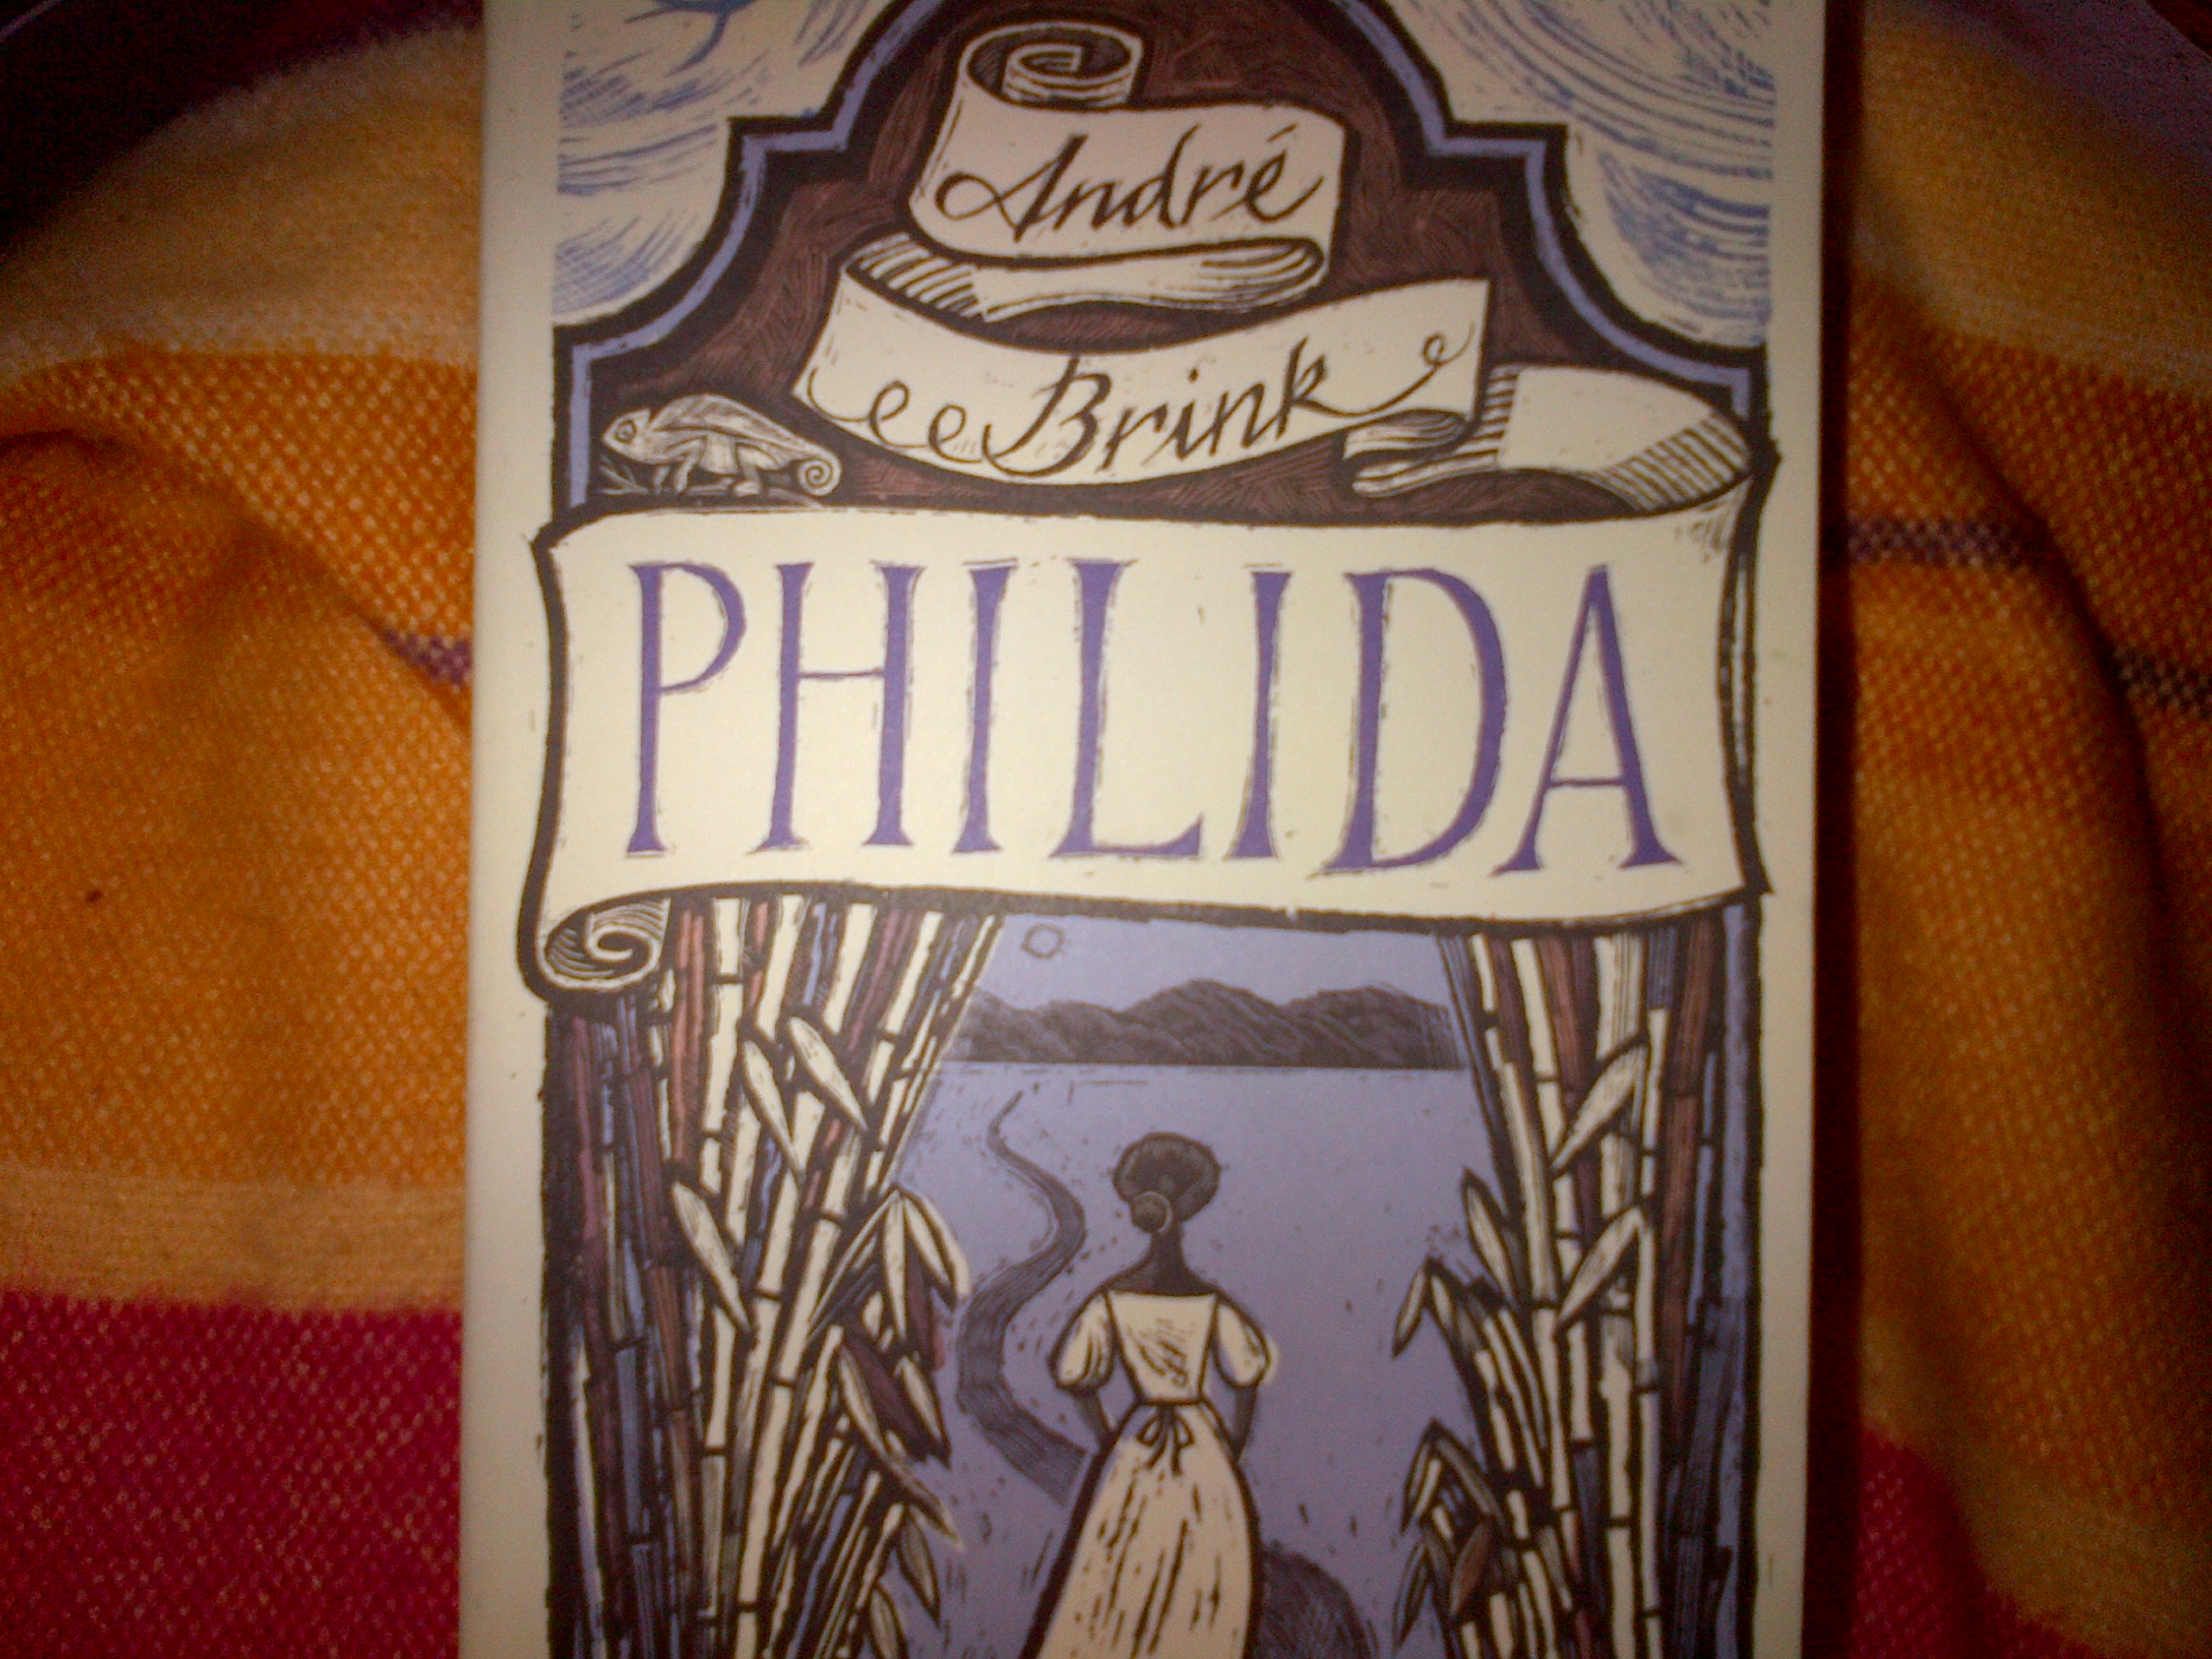 May Book (Philida)